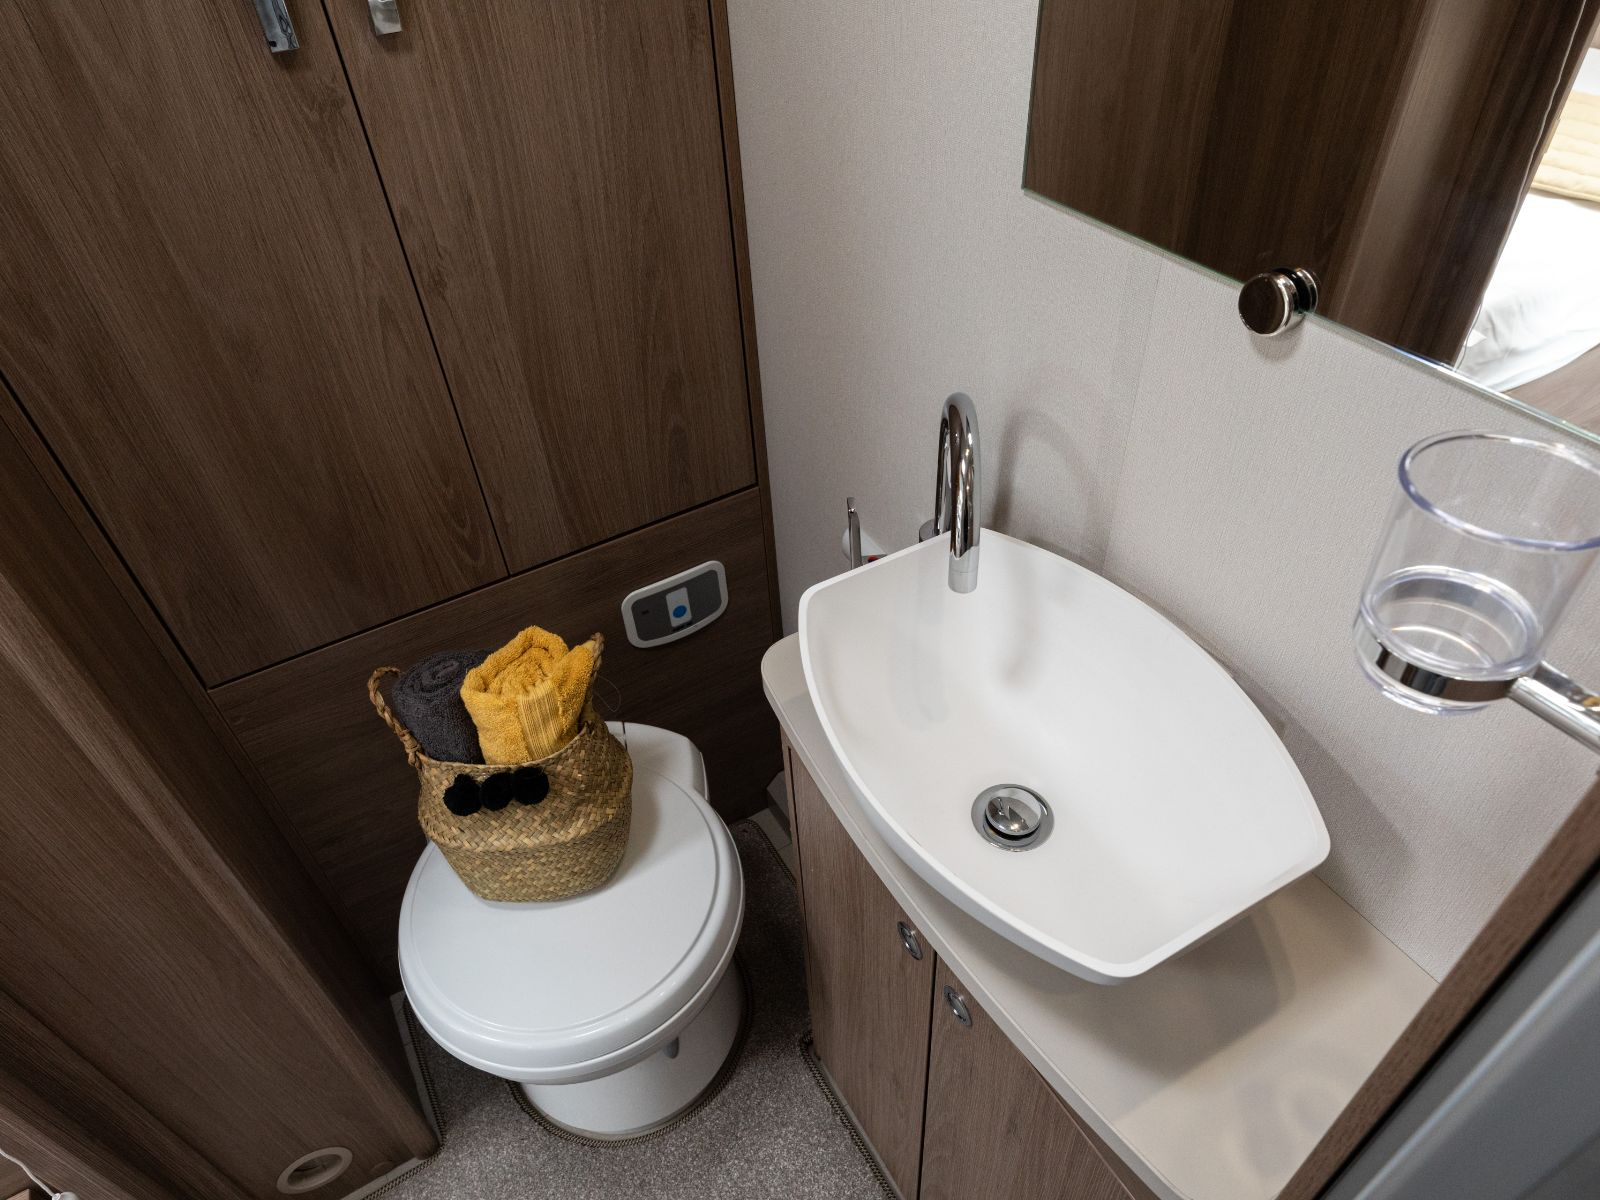 Bathroom toilet and sink with toiletries and storage'